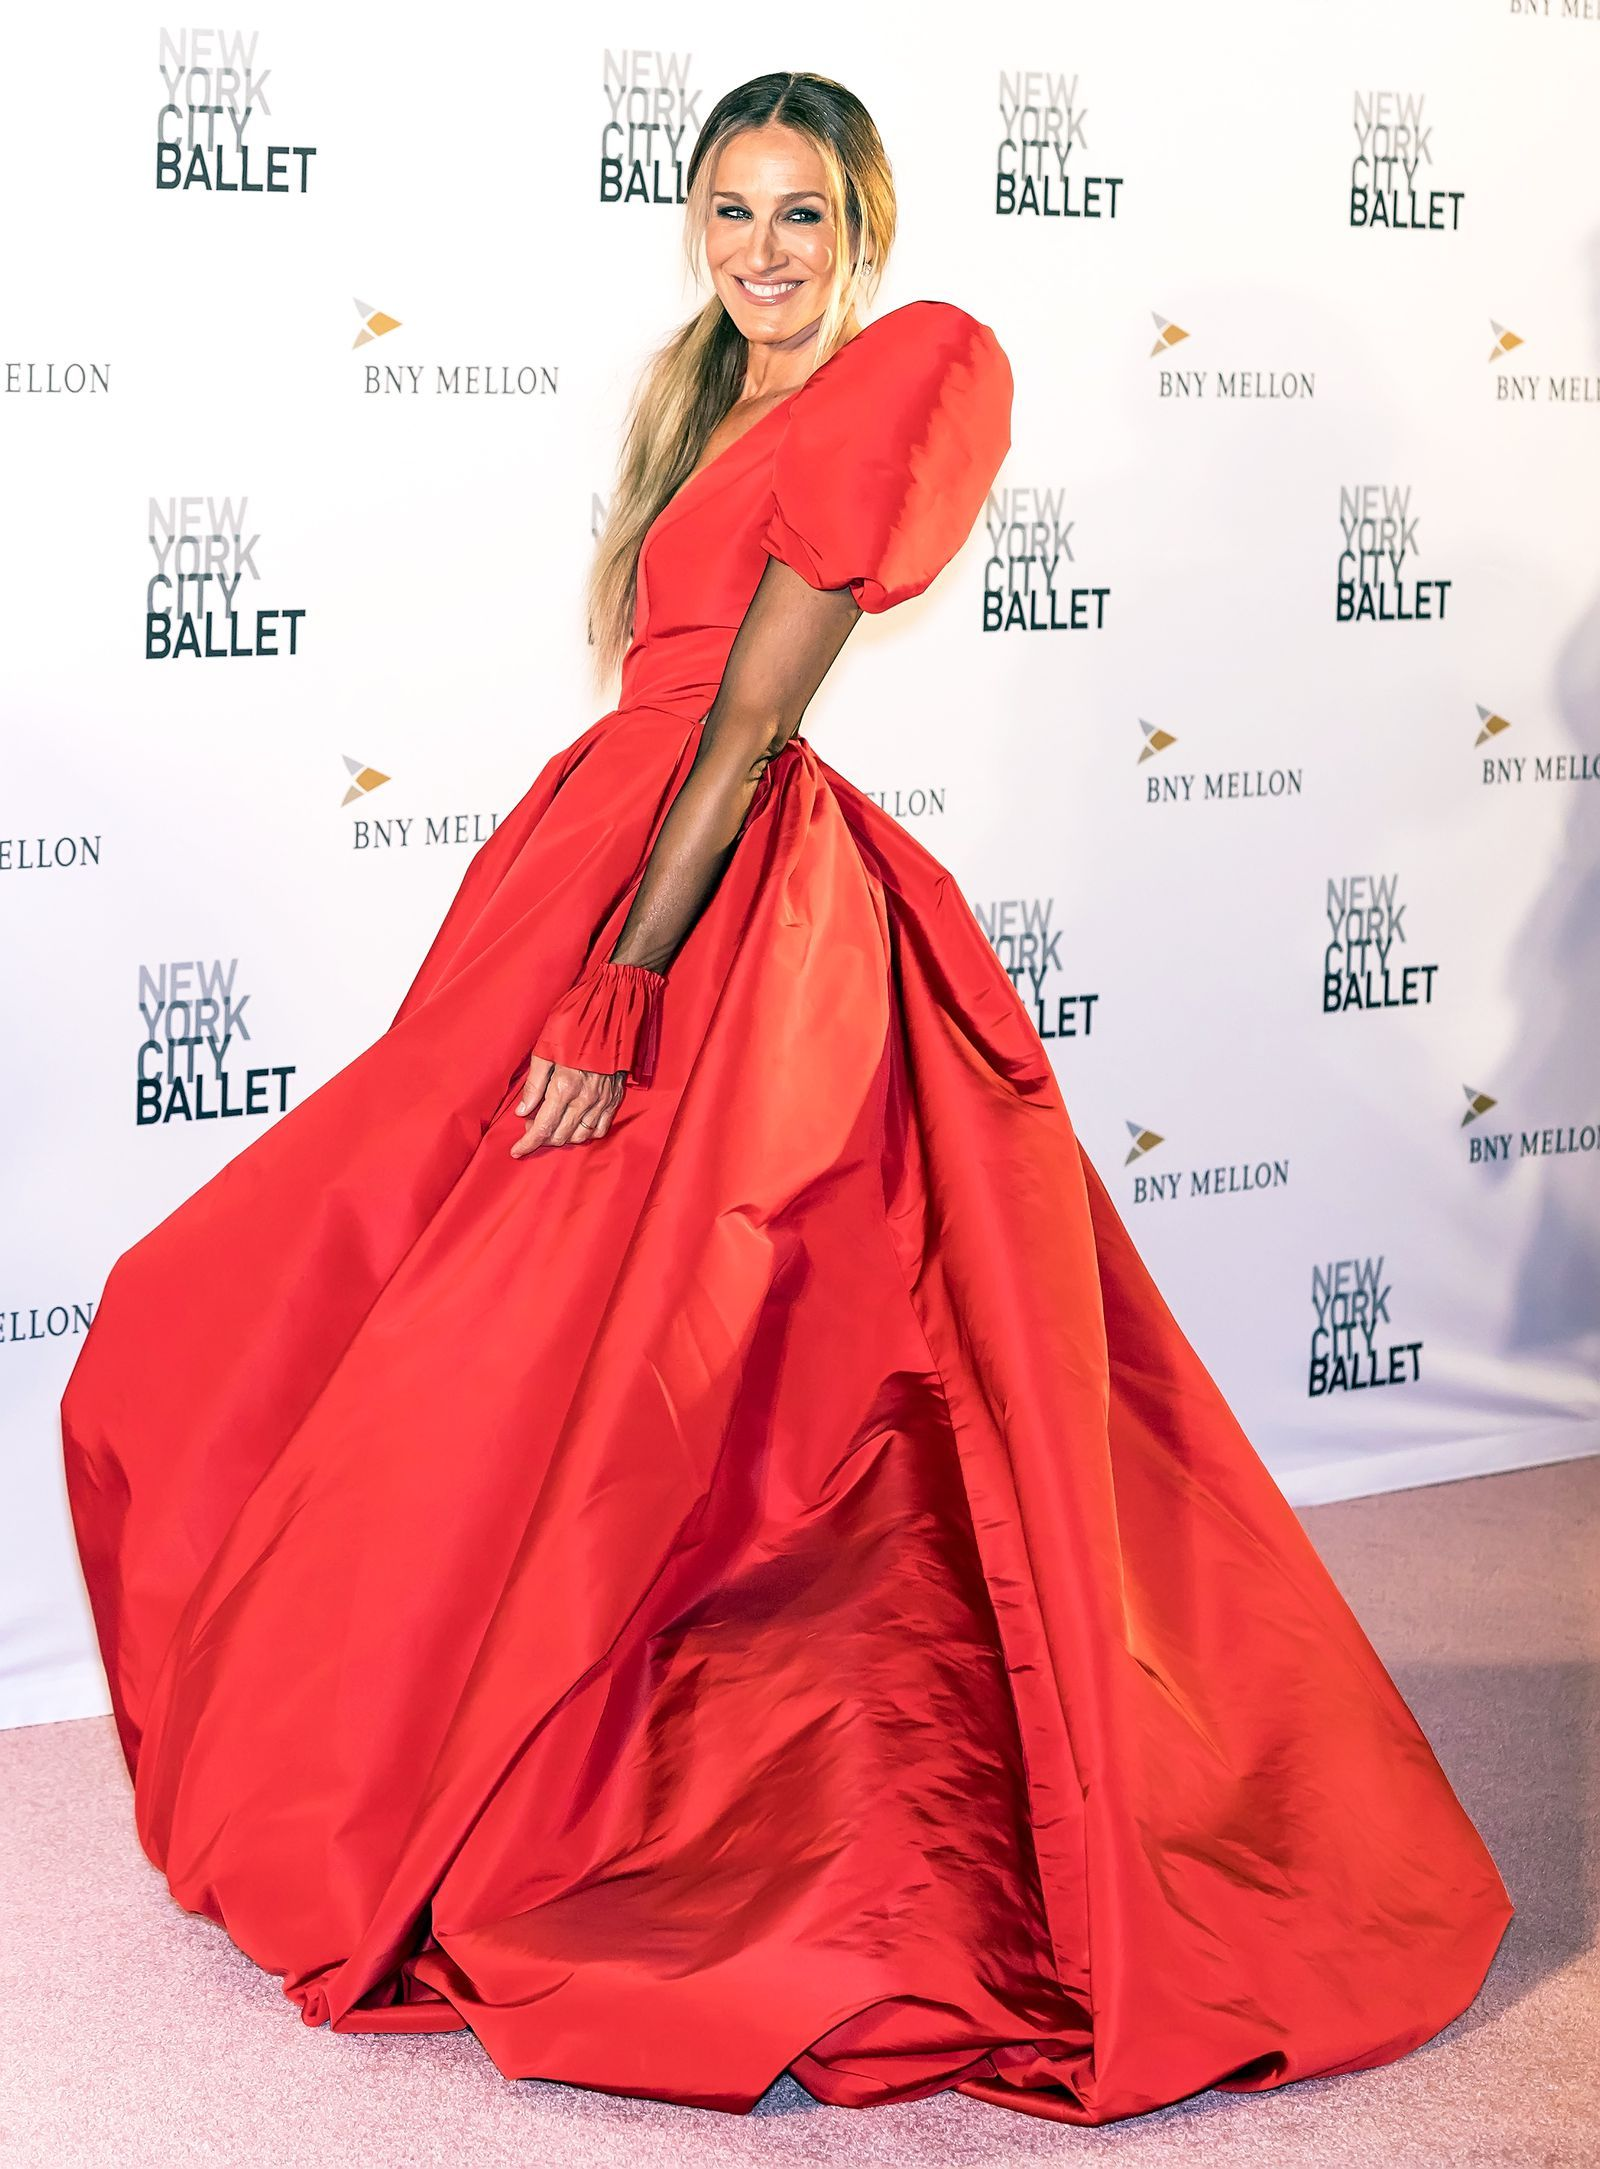 Sarah Jessica Parker Has A Very Carrie Bradshaw Moment In Dramatic Red Dress At The New York City Ballet Fall Gala City Ballet Sarah Jessica Parker Red Dress